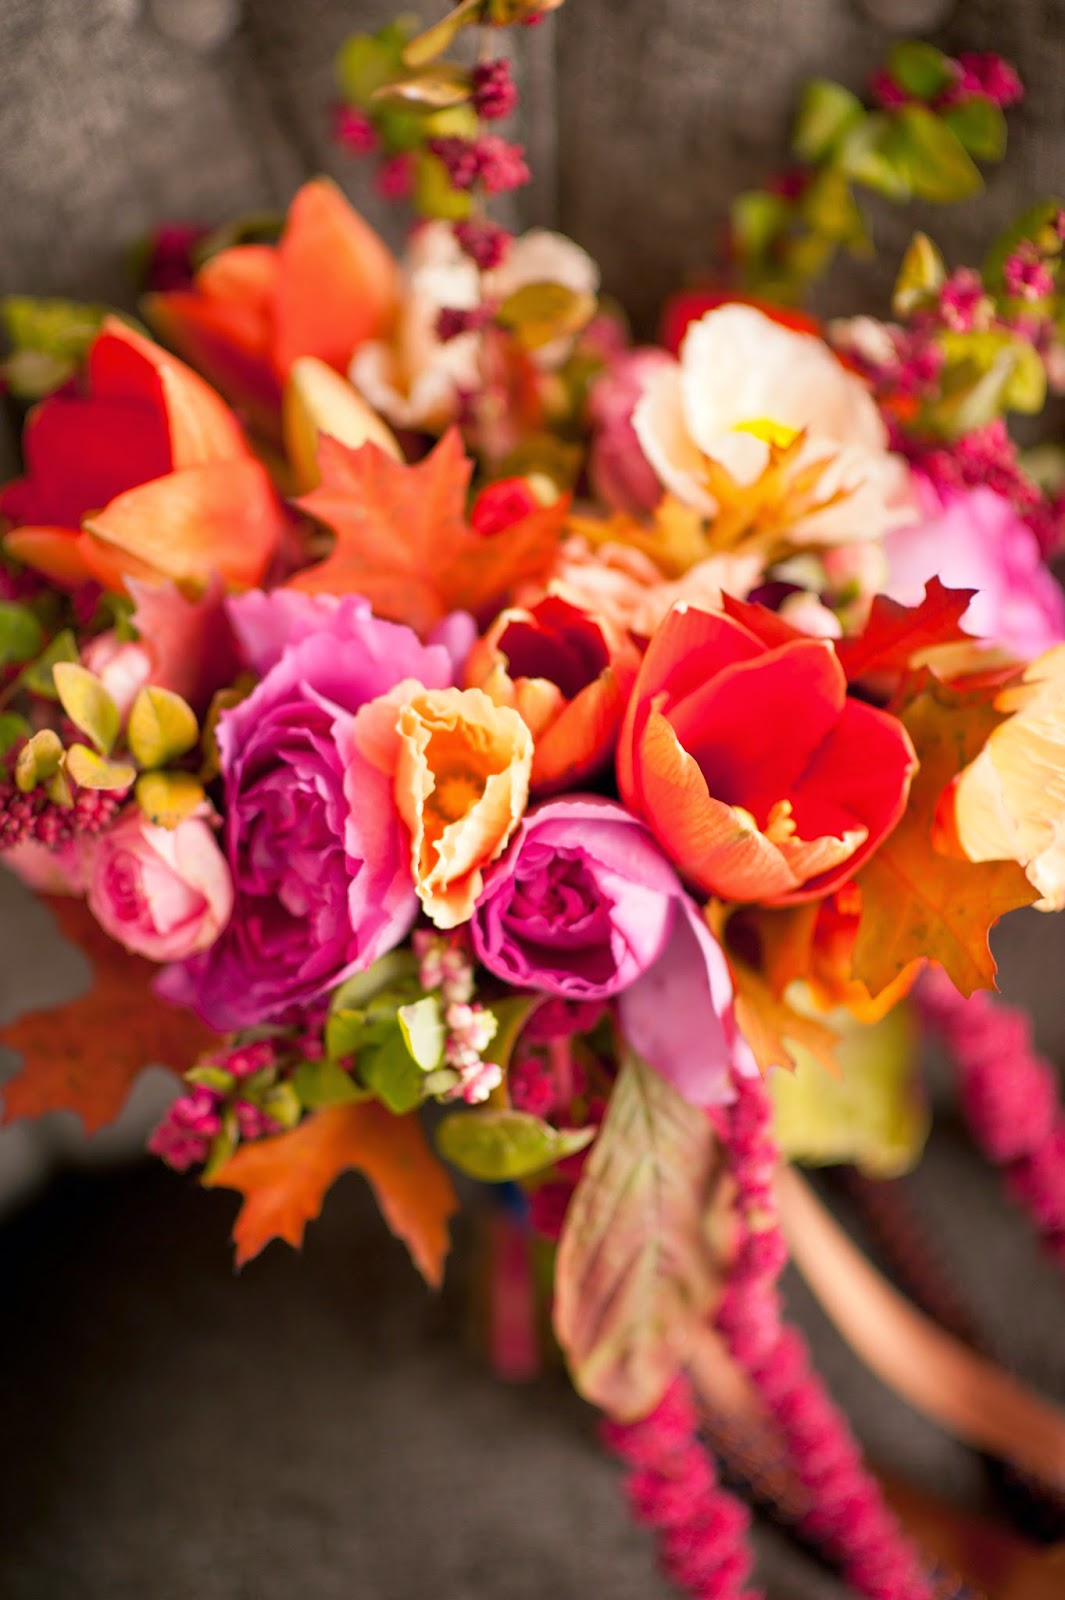 http://www.100layercake.com/blog/2014/04/23/colorful-earthy-fall-wedding-inspiration/